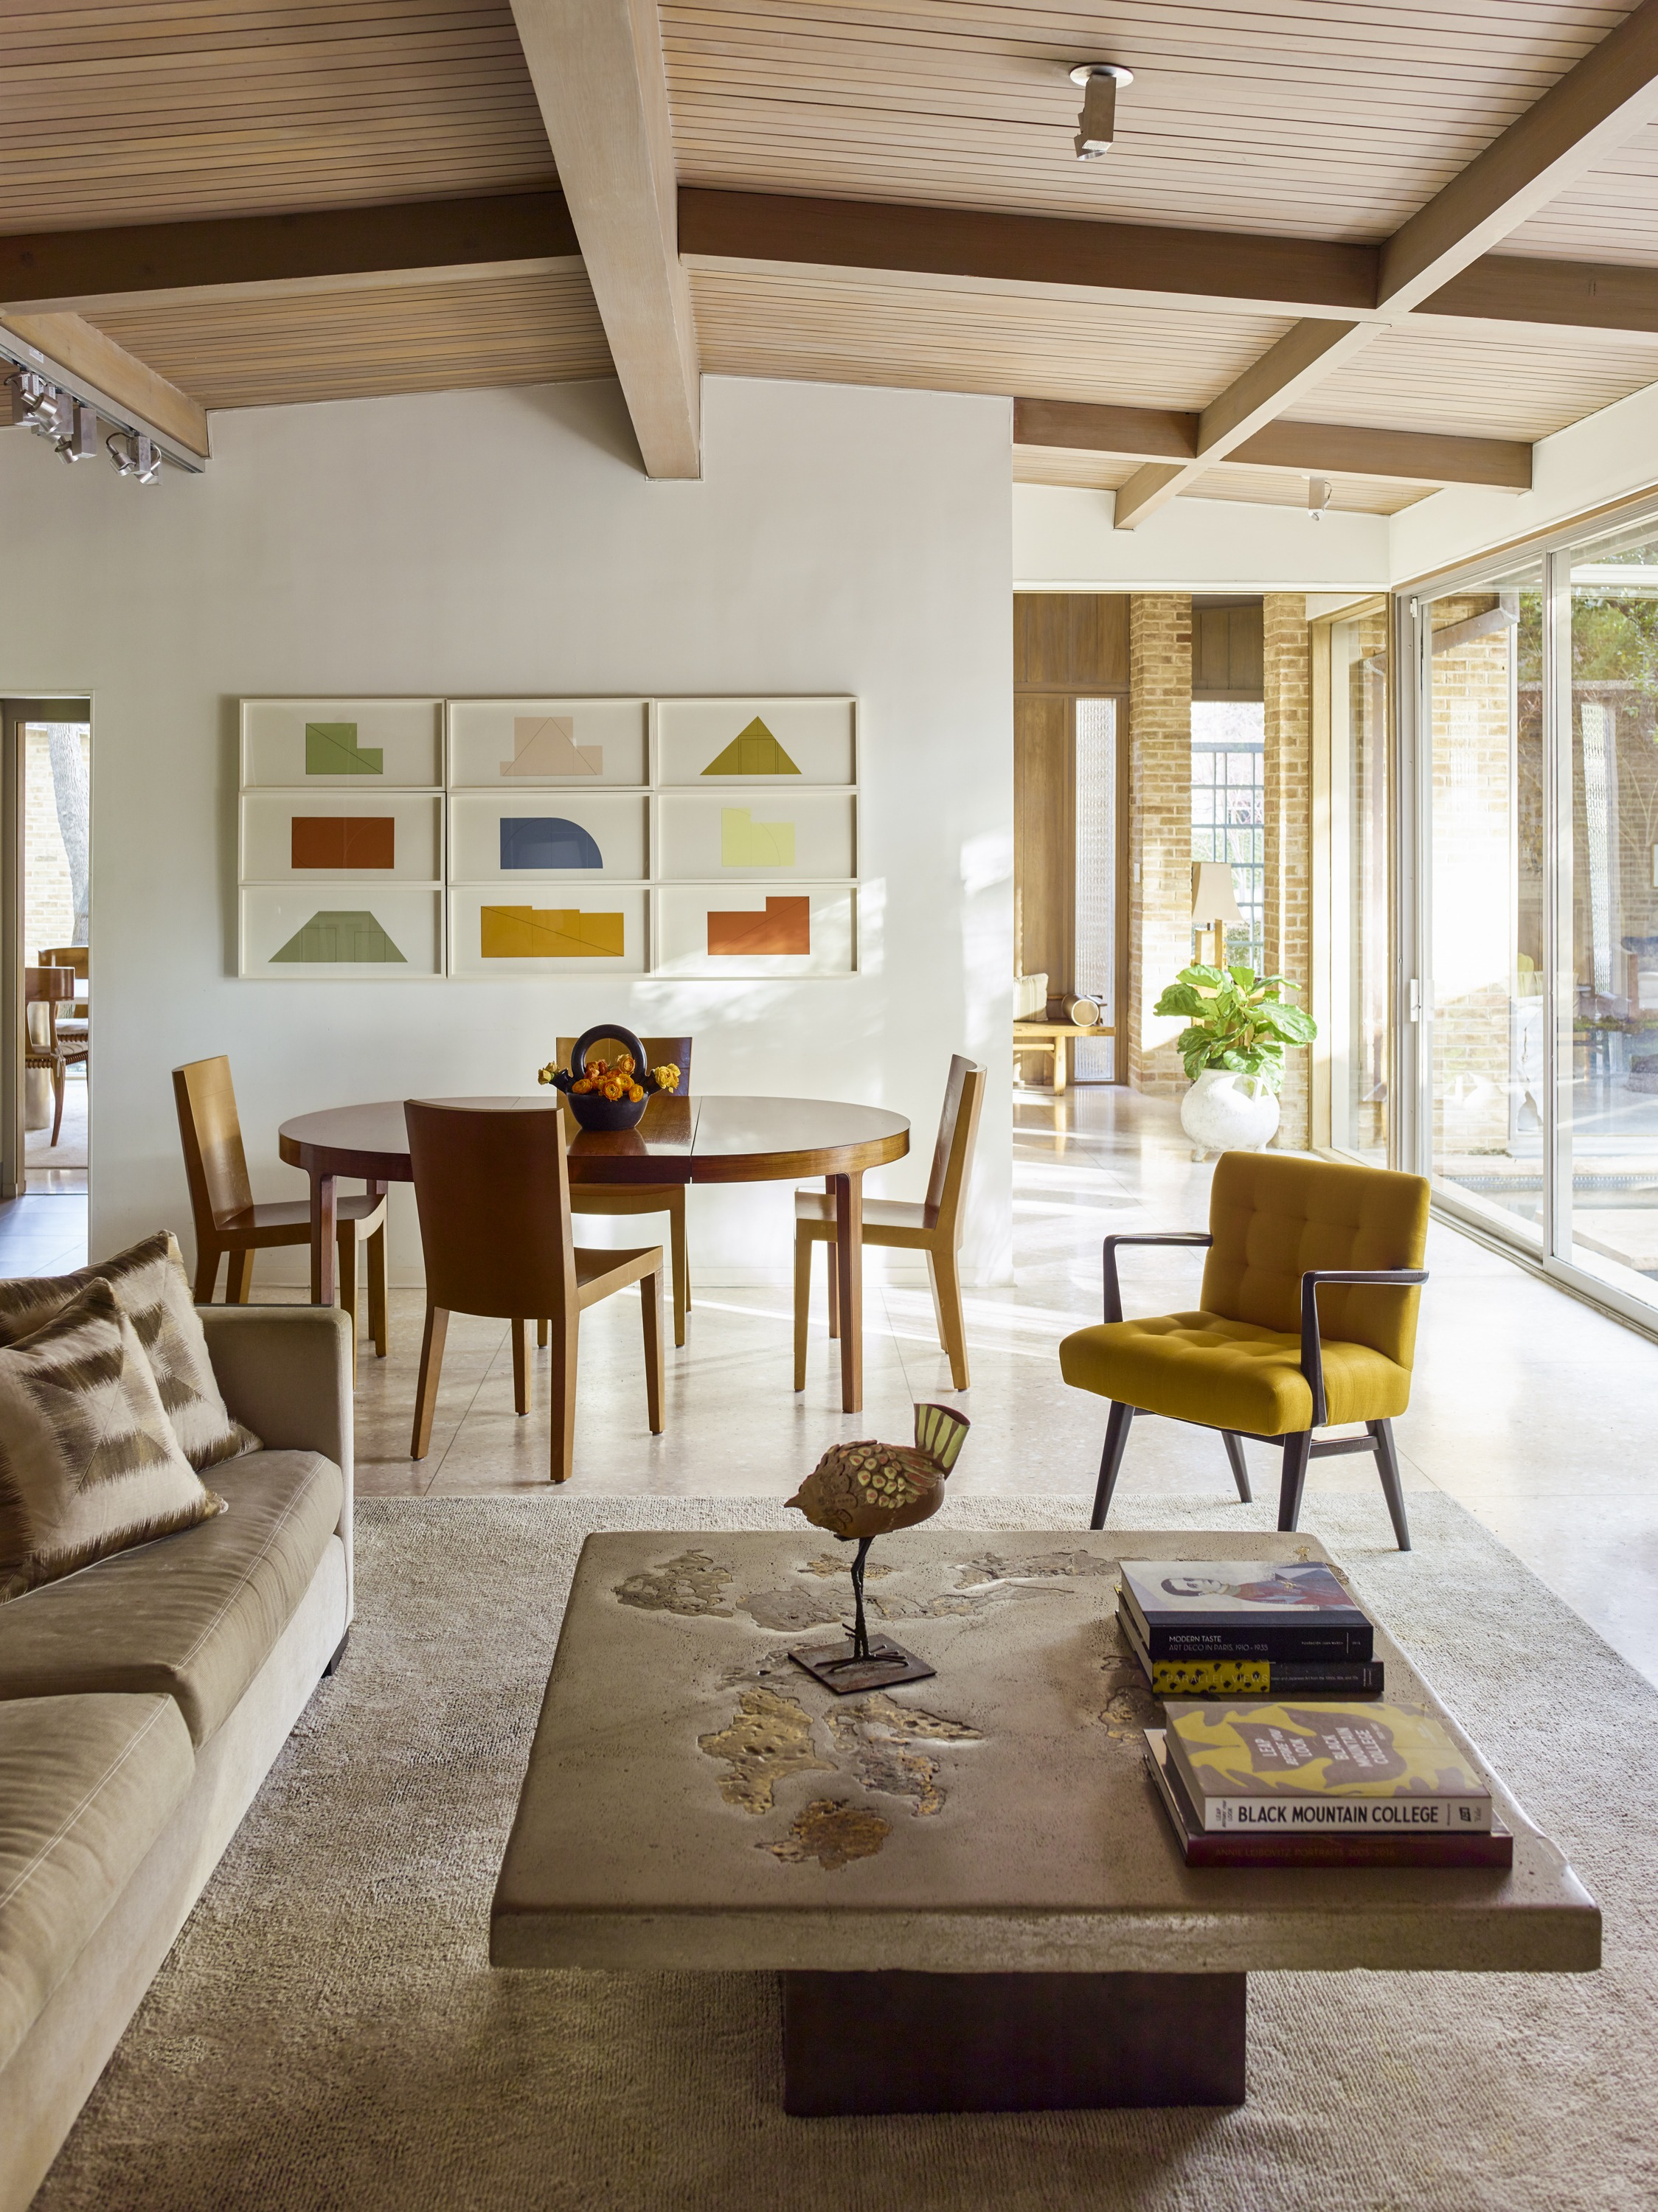 The family room features a Silas Seandel's concrete, steel, and bronze coffee table. The artworks are by Robert Mangold.